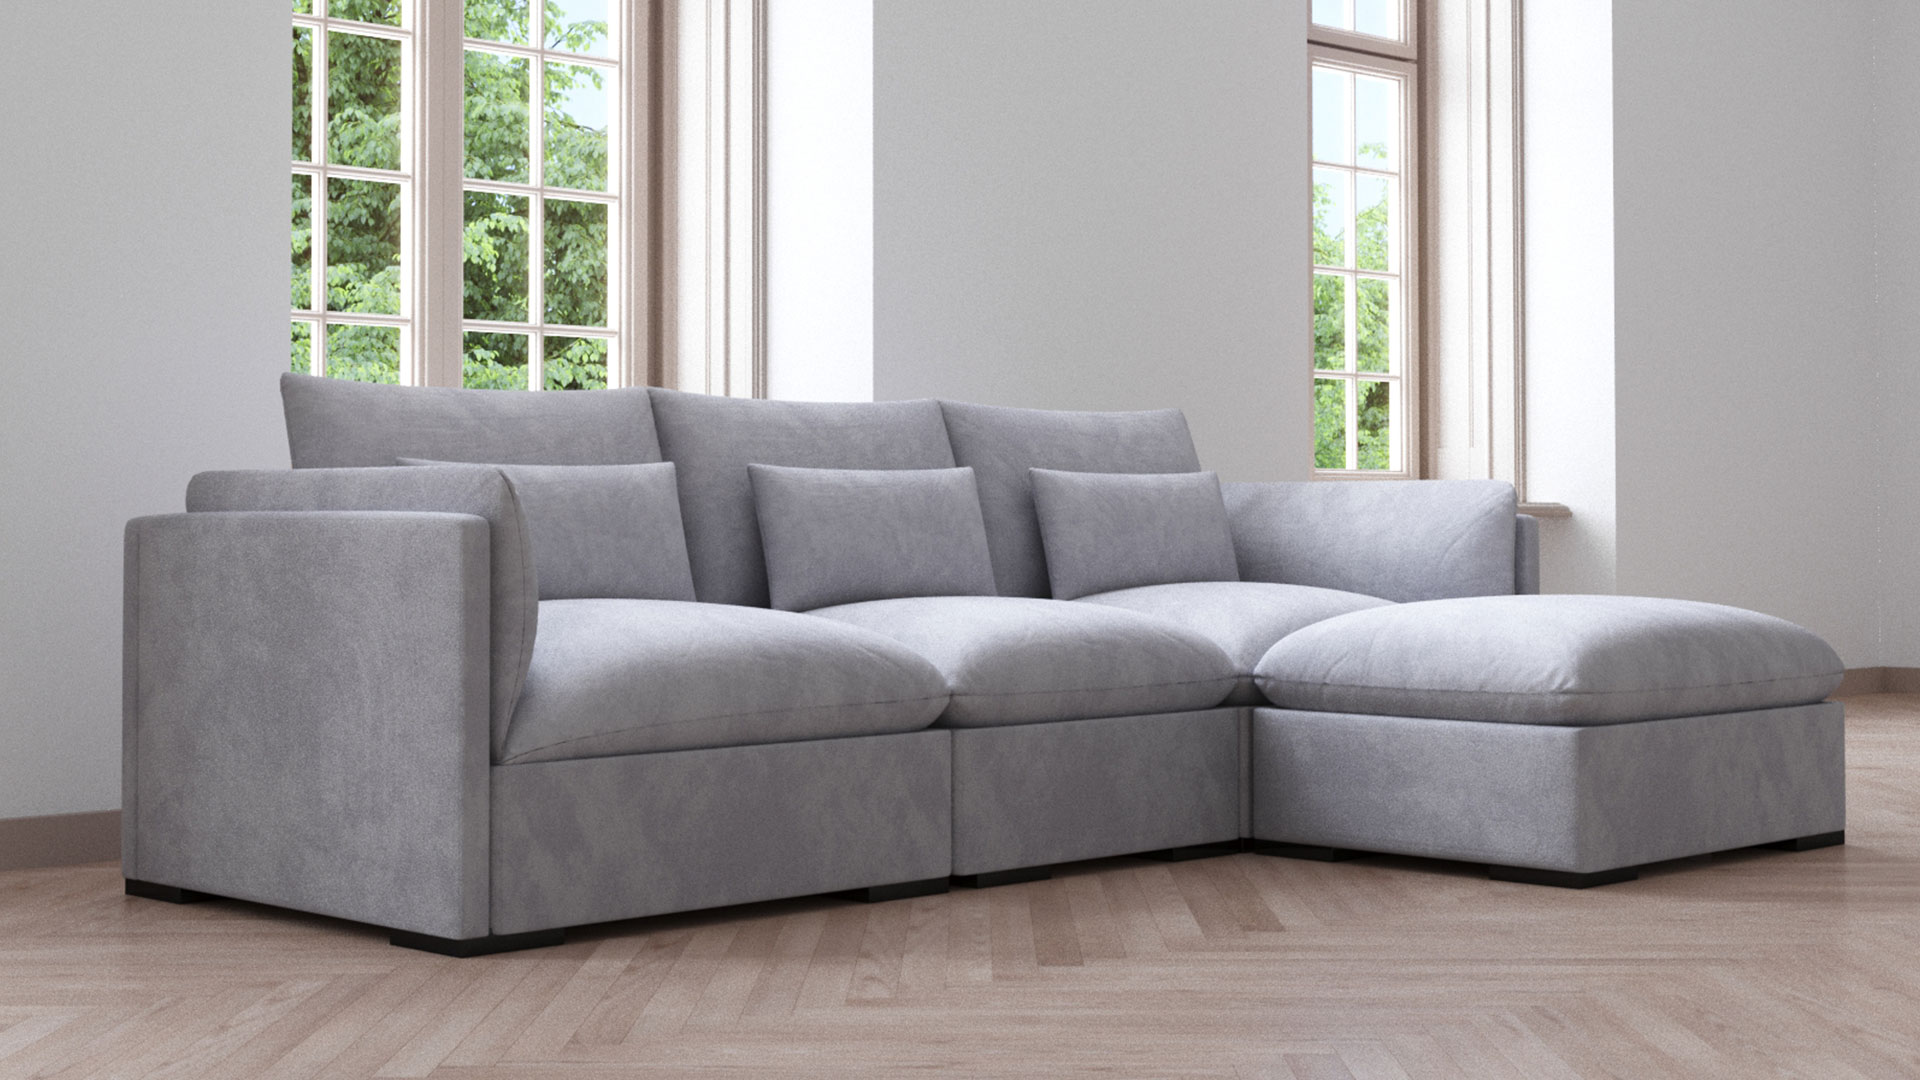 Apartment Friendly Sofas In Vancouver